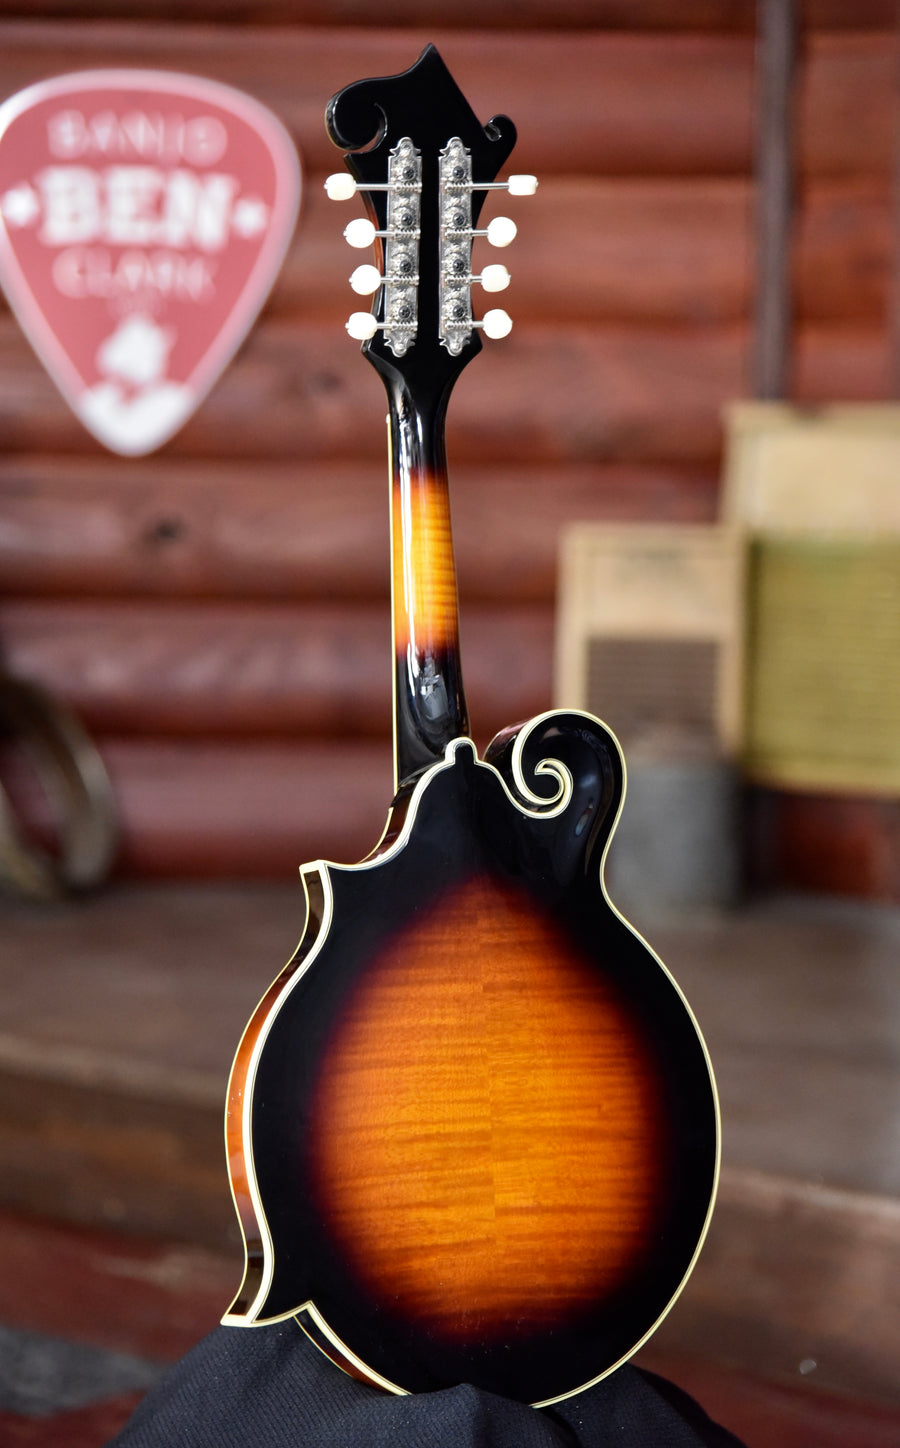 The Loar LM-600-VS F-Style Mandolin With Case